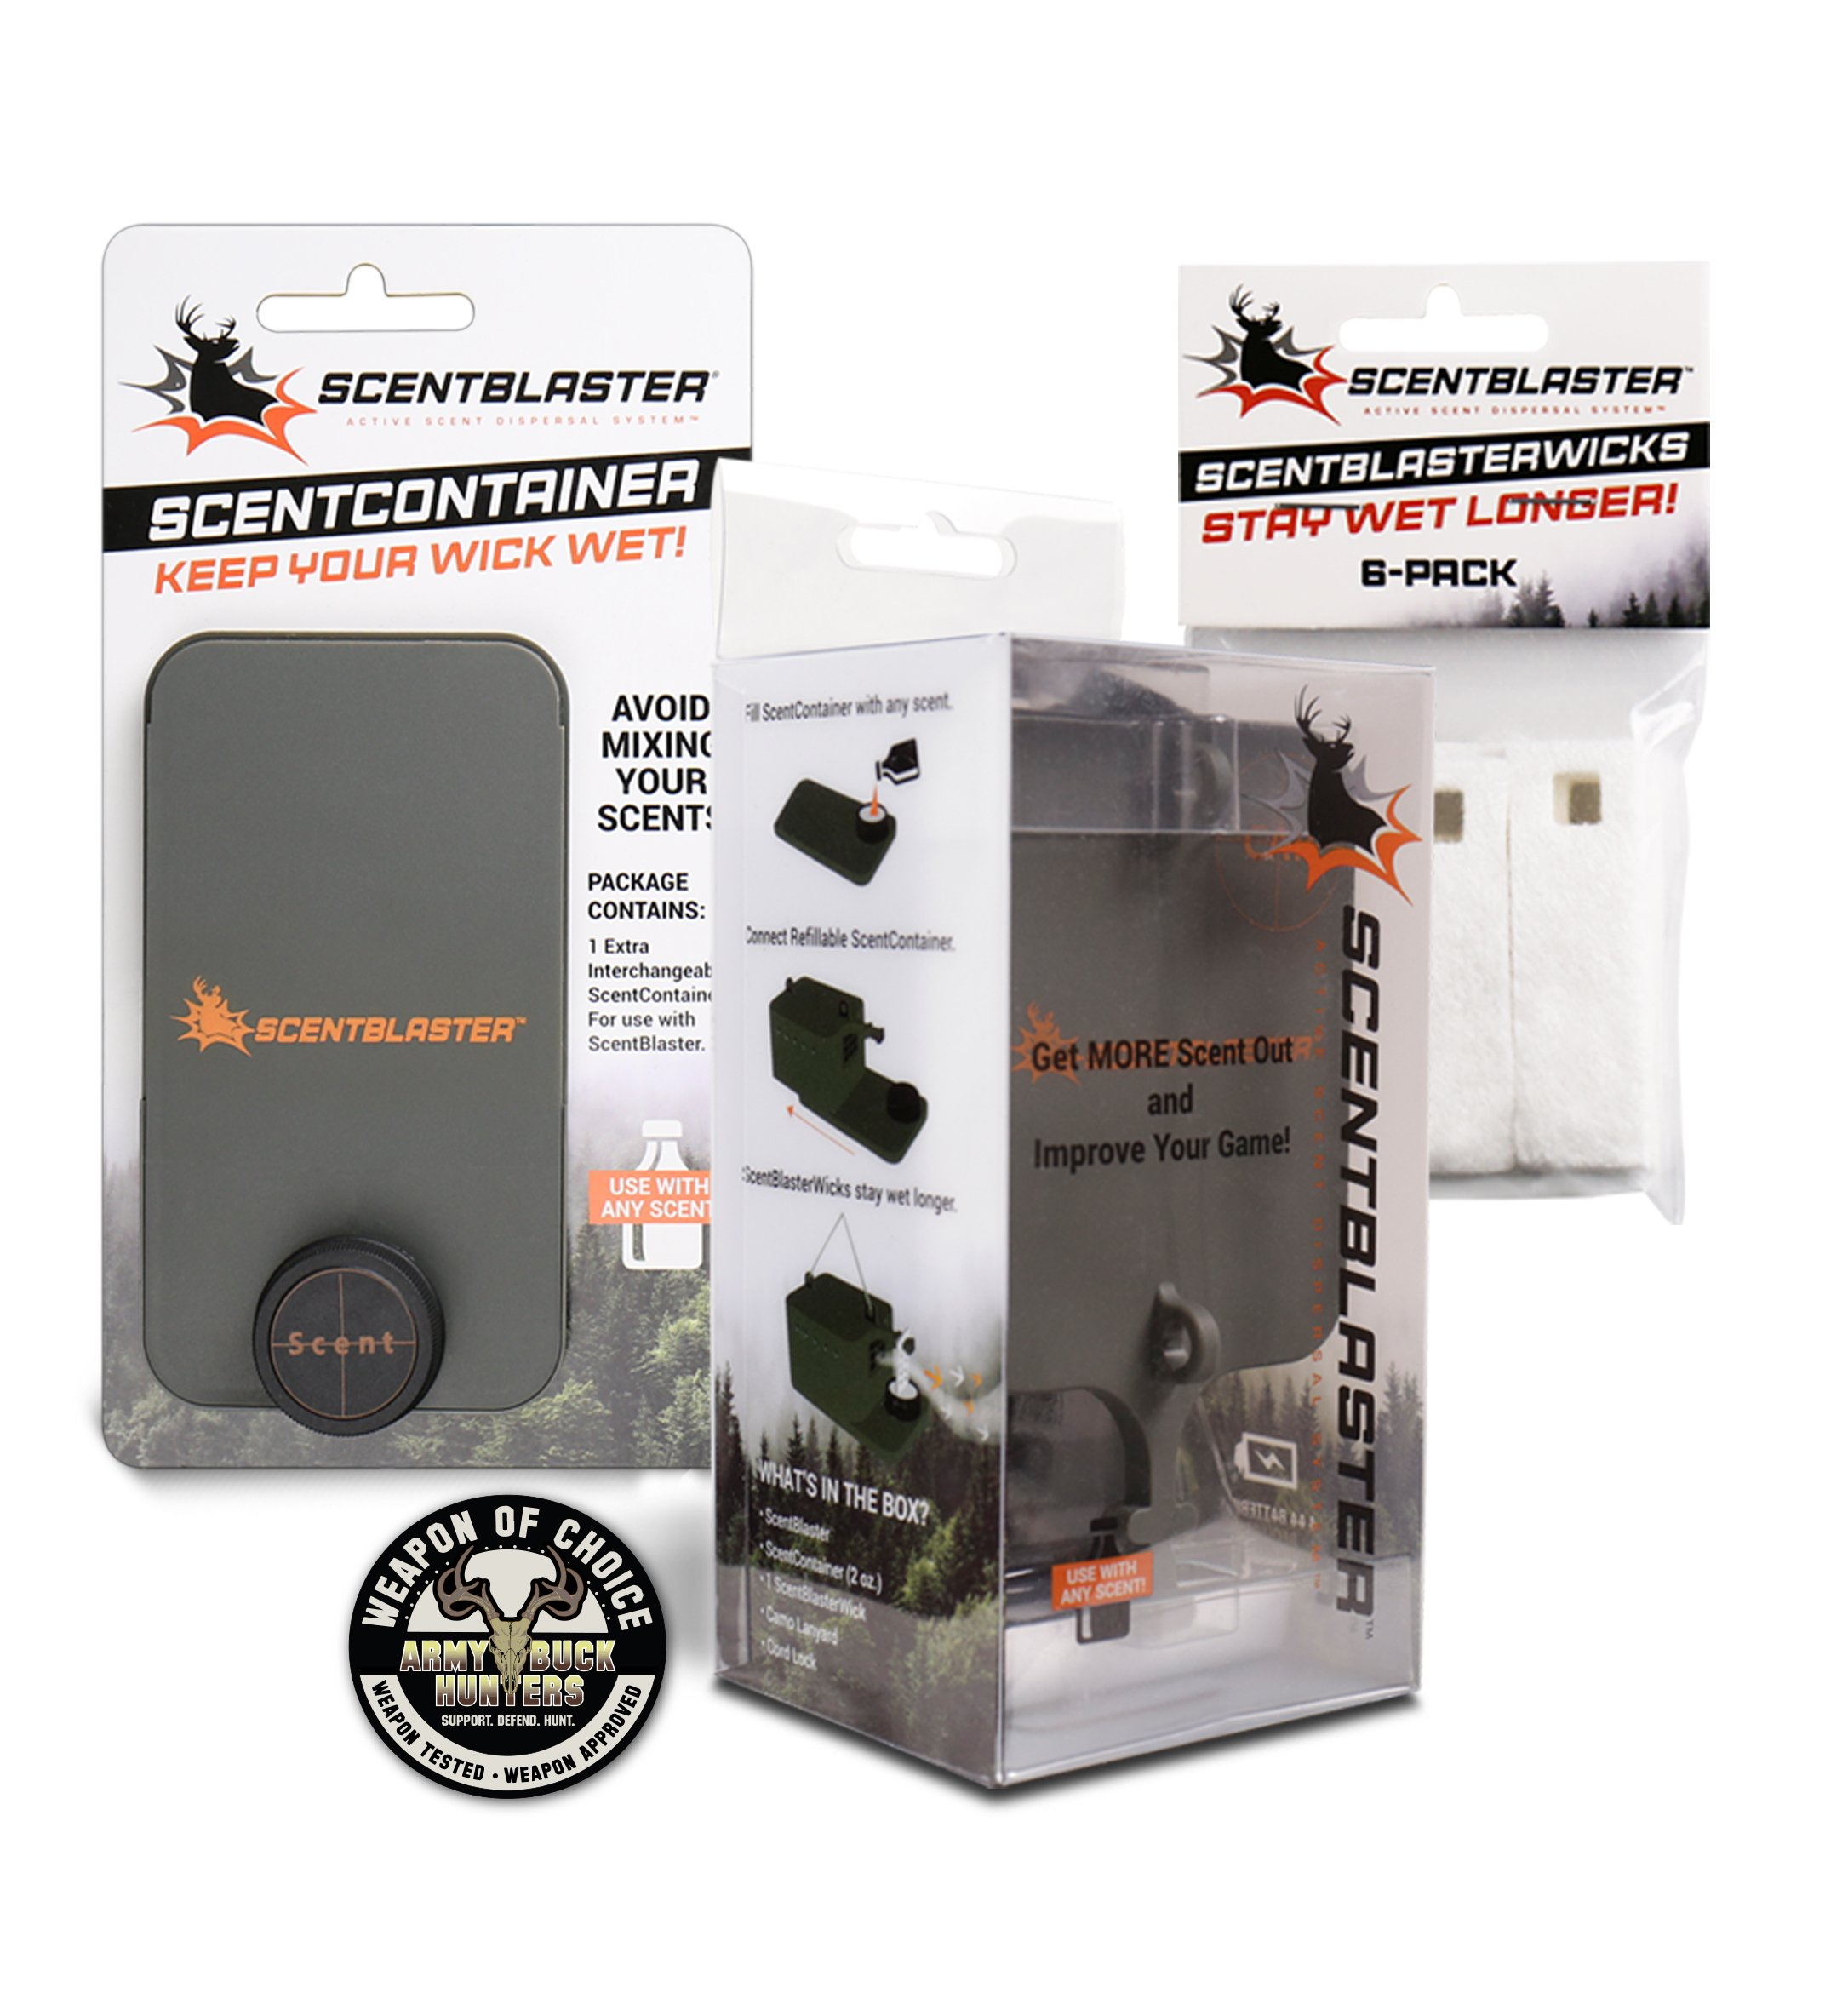 ScentBlaster Pro Kit, ScentBlasterWick 6-Pack & Extra ScentContainer. The World's best wicking system, works with any hunting scent, attracts more game to the kill zone!